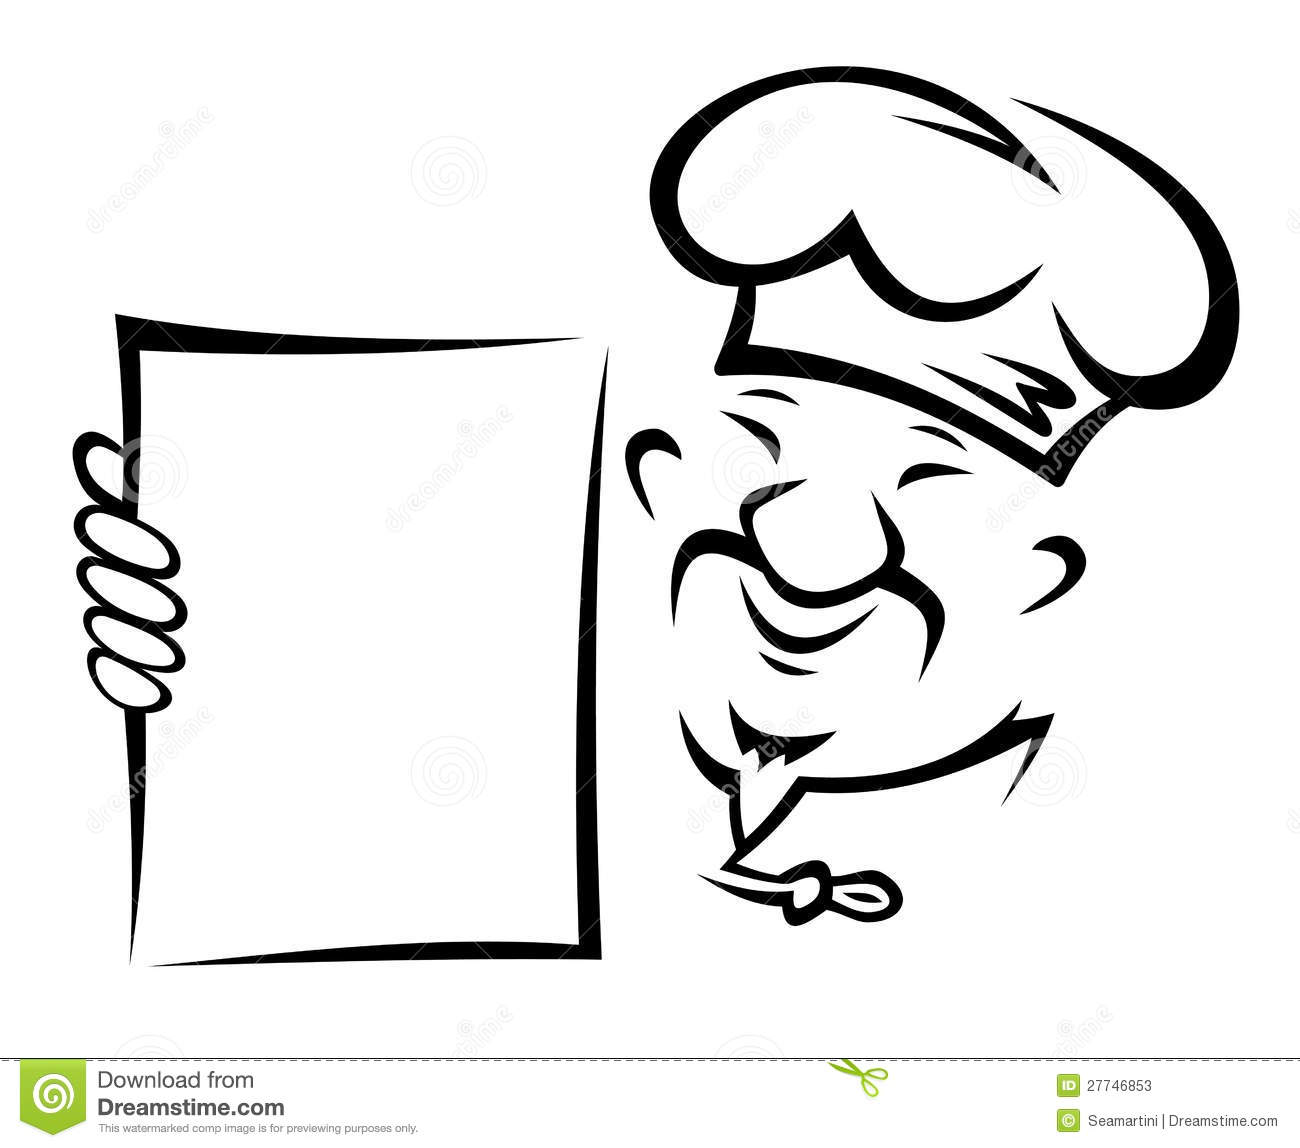 Stock Illustration Tyroid Gland Outline Black Single Hand Drawn Thyroid Image44747118 together with Royalty Free Stock Images Cartoon Happy Boy Face Black White Line Retro Style Vector Available Image37033249 as well Mushroom House furthermore Stock Photos Chinese Chef Menu Image27746853 also Shrek Free Font Download. on s 3d cartoon